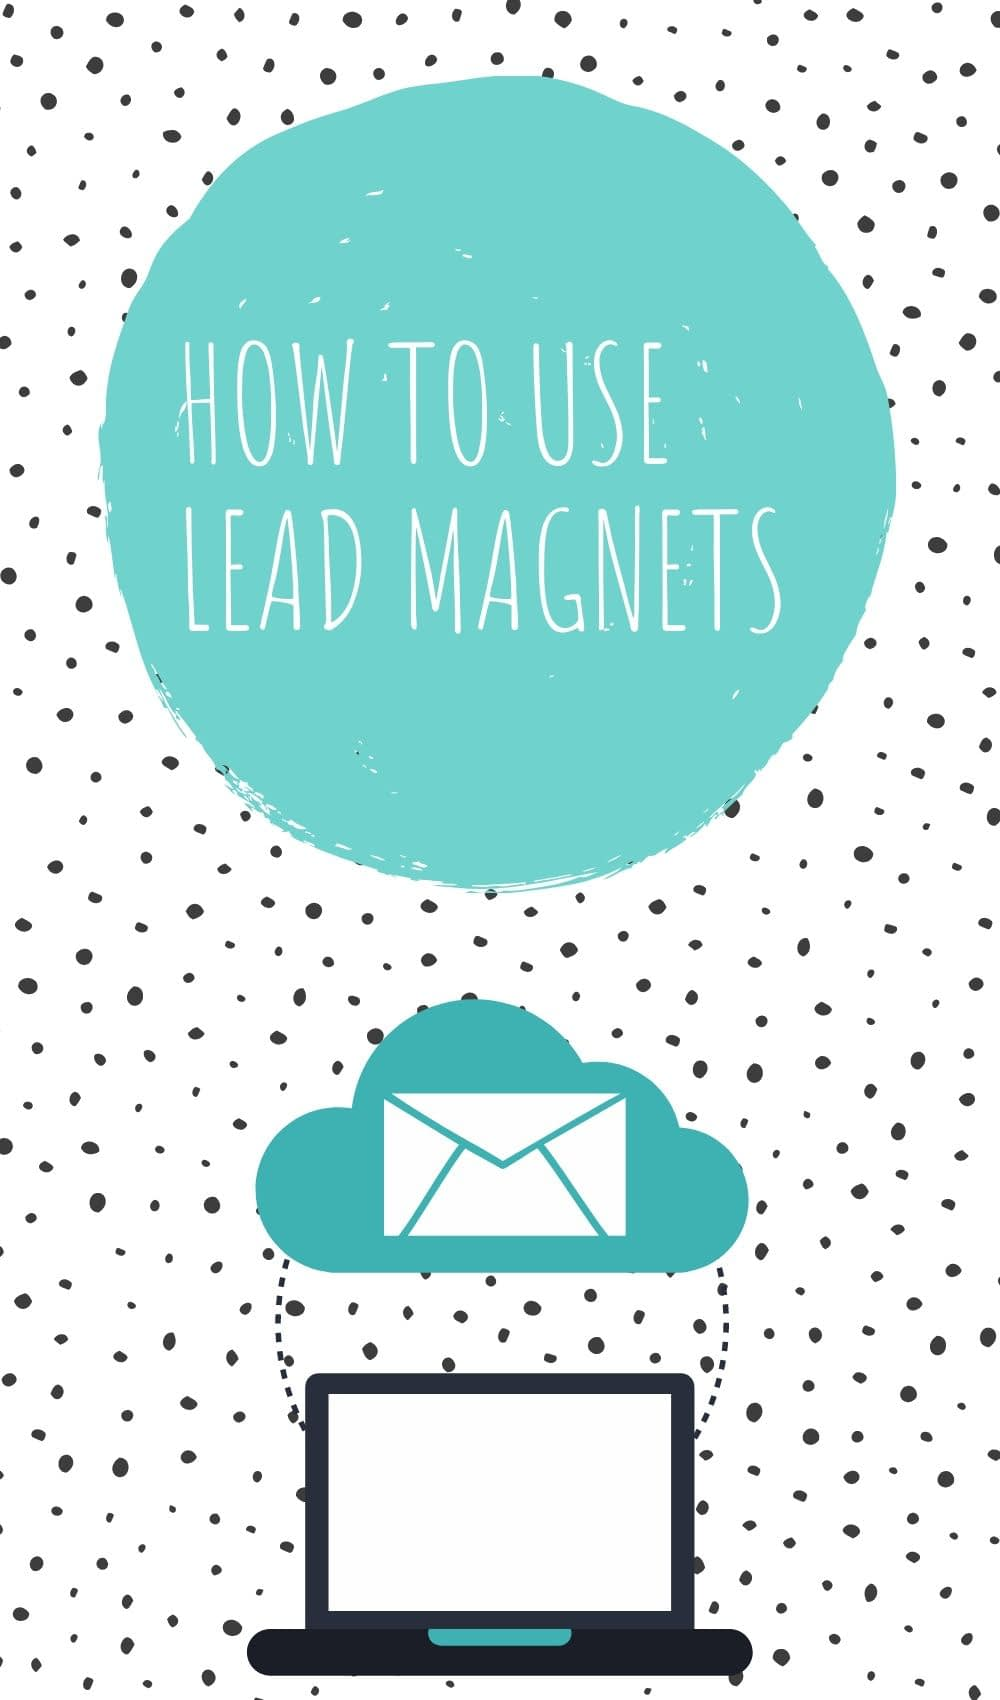 Any blogger that has a goal to earn money from their blog understands the importance of lead magnets for building an email list. This is done by making offers in exchange for contact info